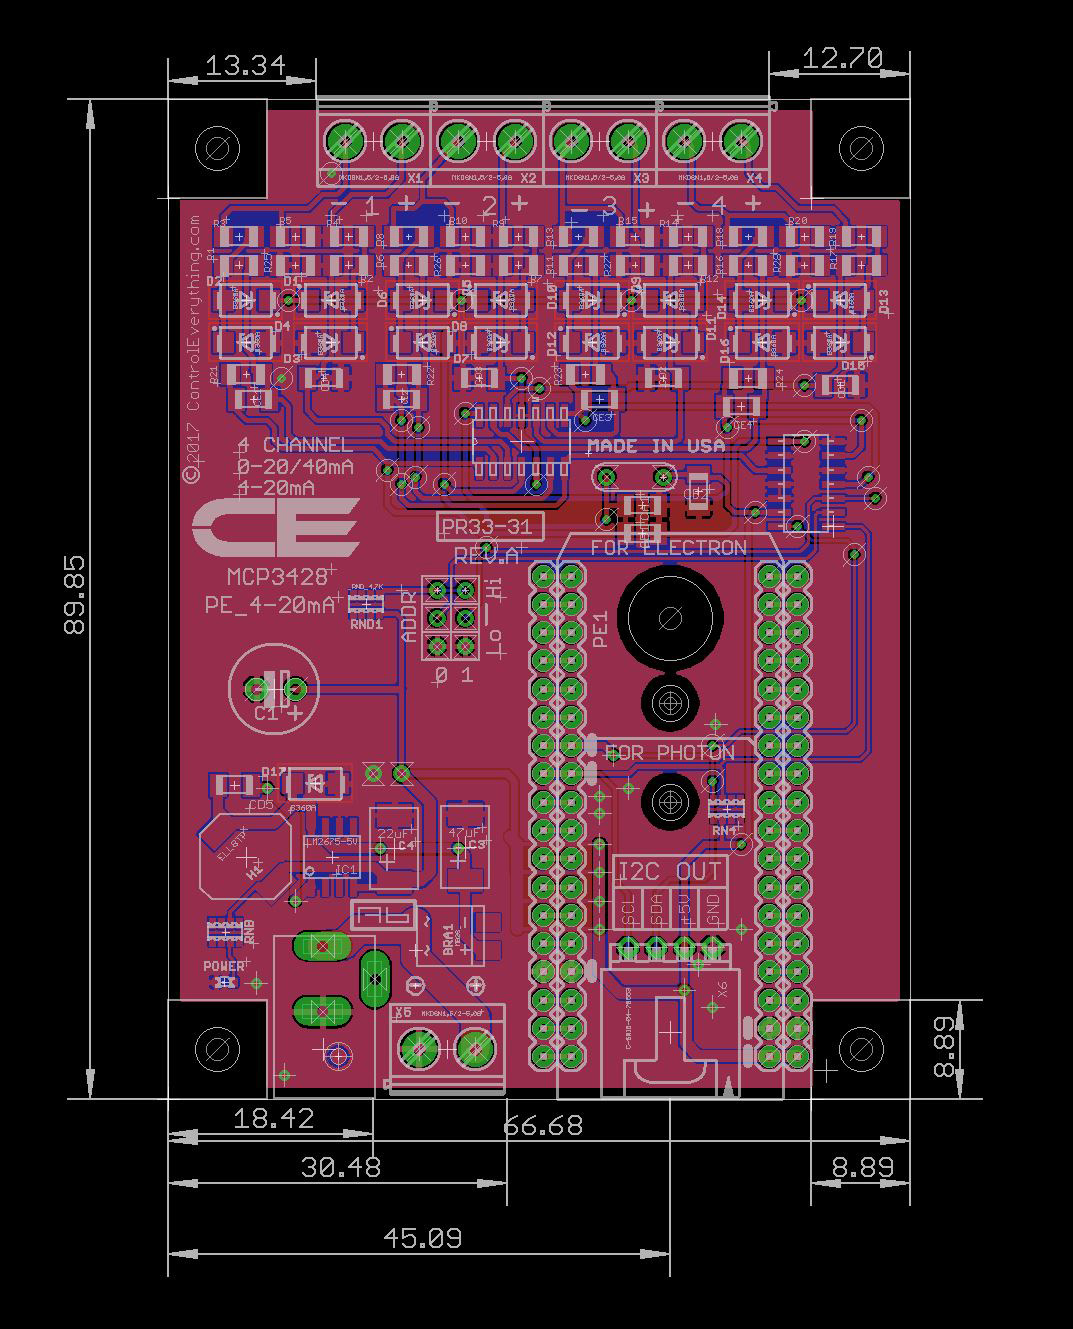 PE_4-20mA_4C_Mechanical_Drawing  Channel Video Switcher Wiring Diagram on residential wiring diagrams, audio wiring diagrams, sound diagrams, data diagrams, voice diagrams,